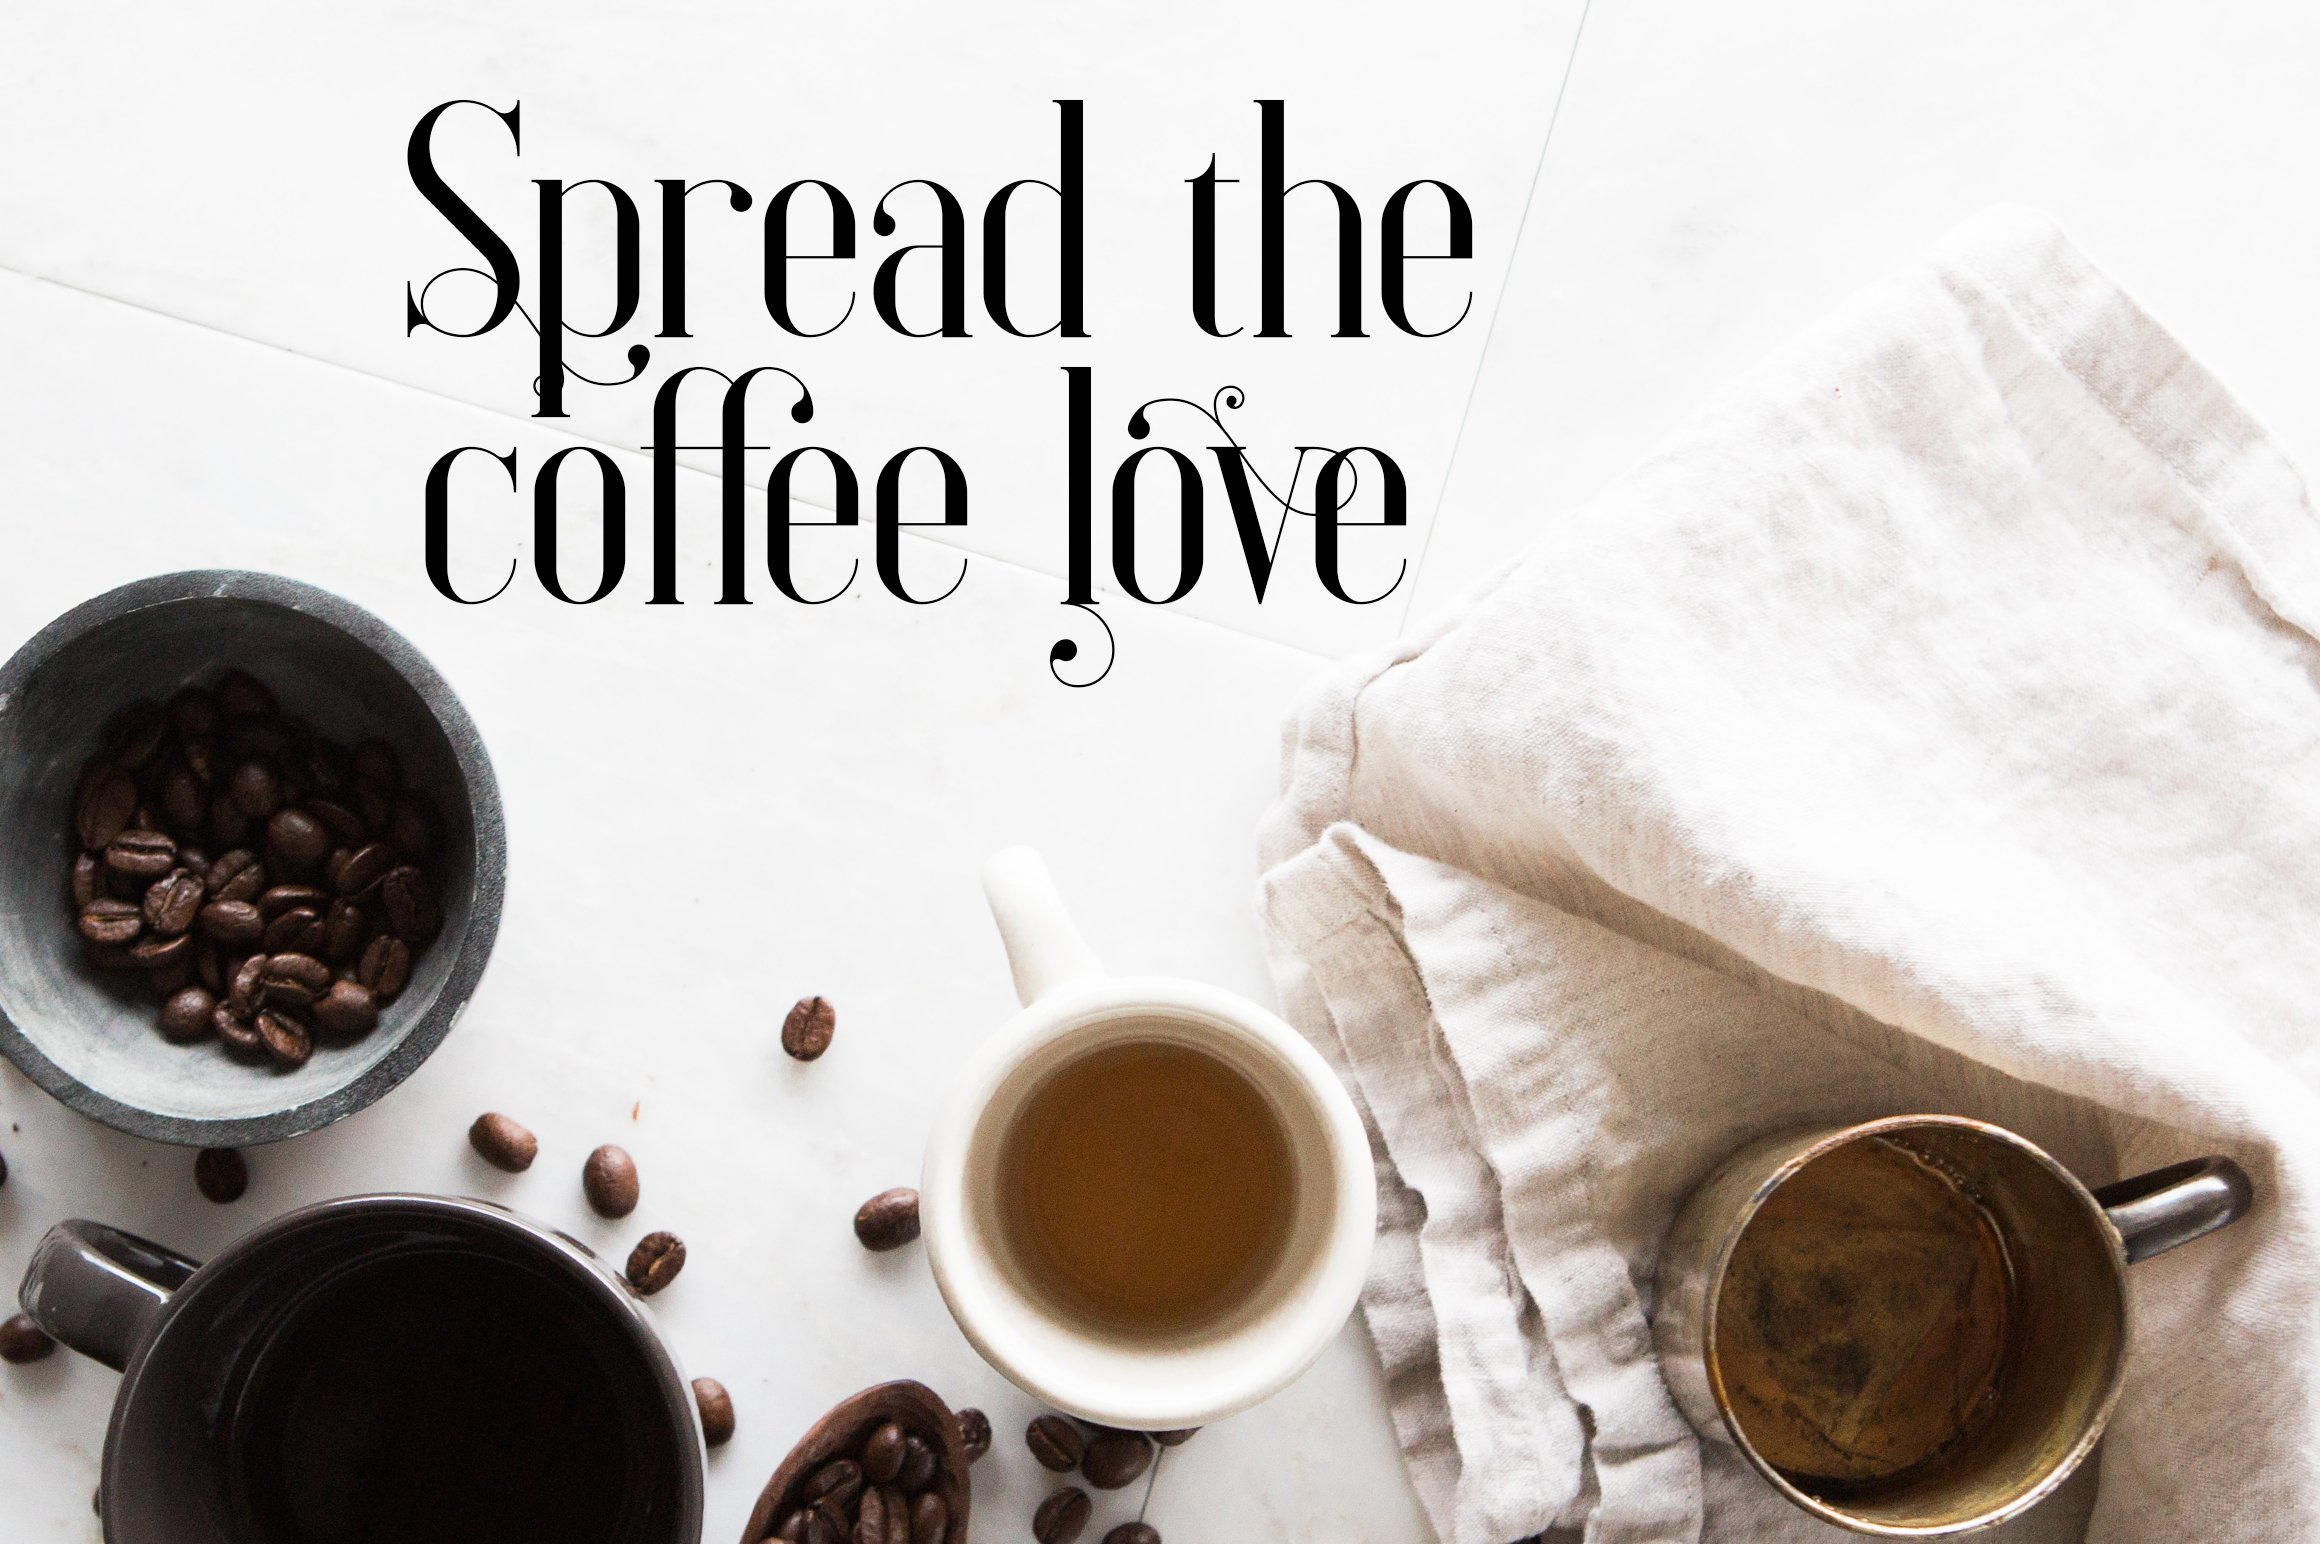 This is coffee time. The soft print adjusts for a relaxed atmosphere. Elysian - Serif Font.